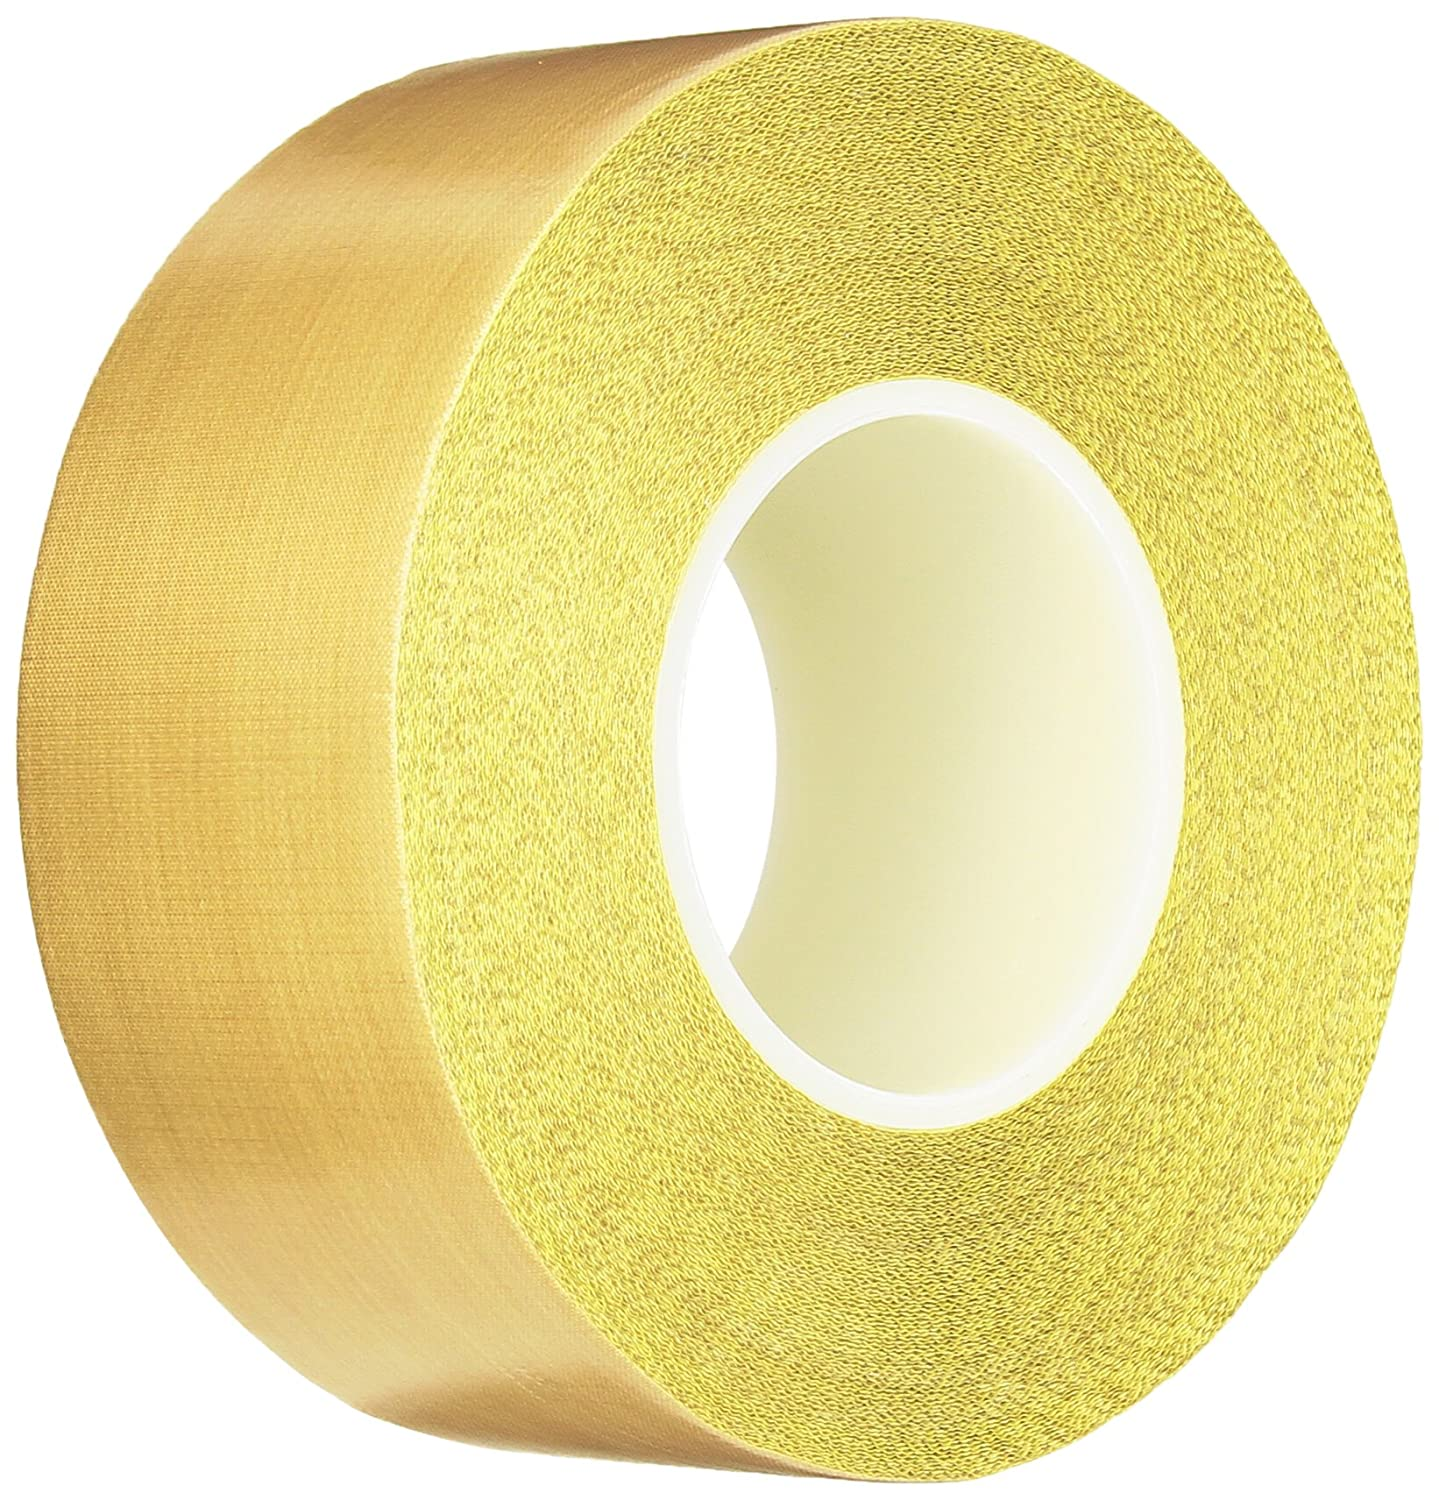 Teflon 21-3S Teflon Coated Tape, Silicone Adhesive, 2.5' x 36 Yards 2.5 x 36 Yards CS Hyde Company Inc 21-3S-2.5-36